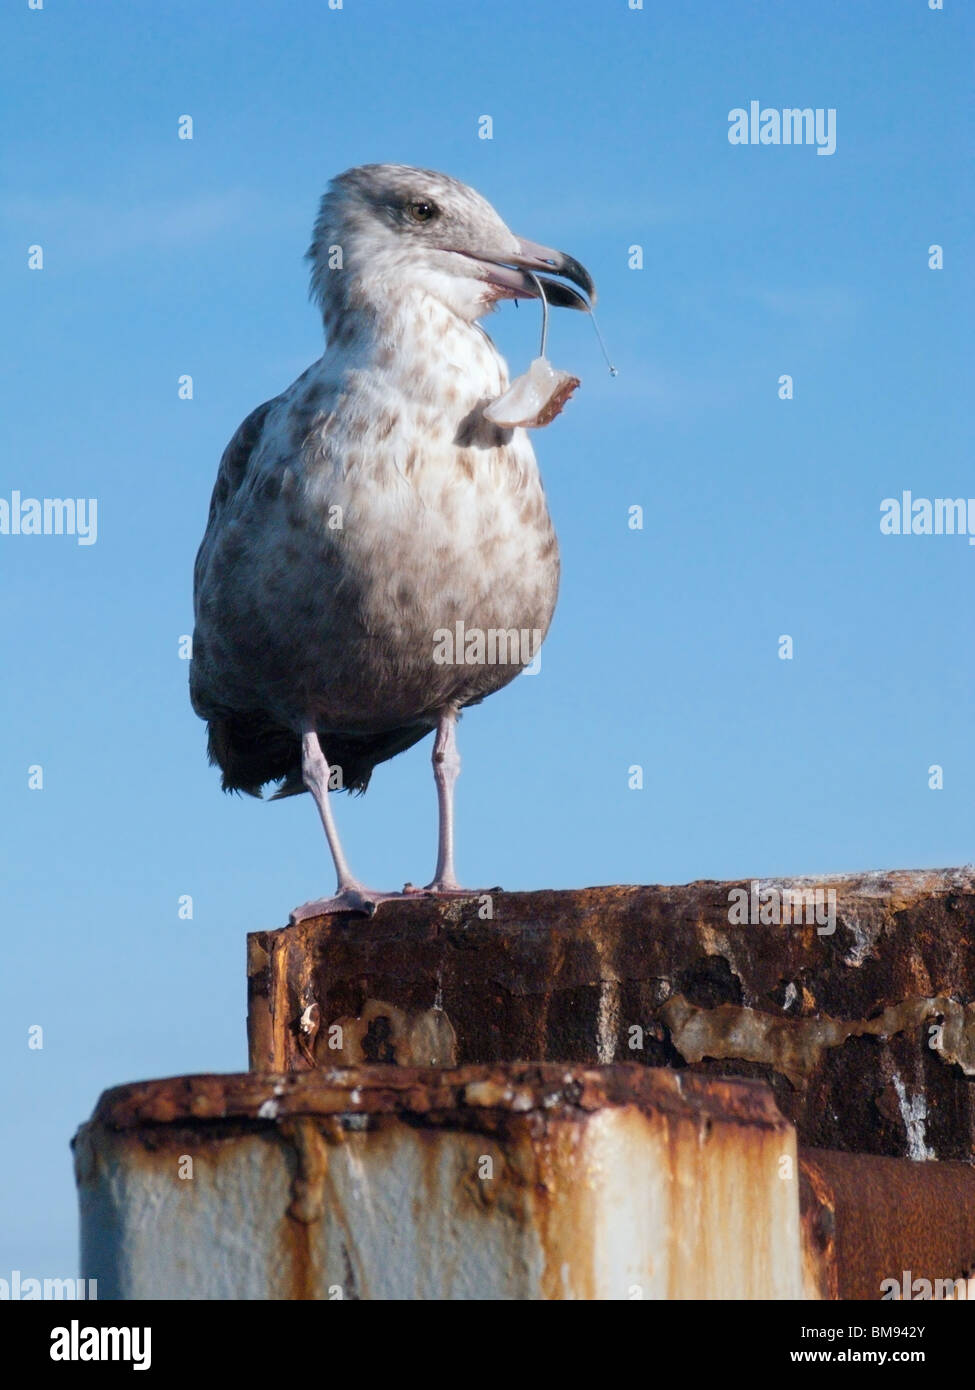 Seagull on Pier with Hook and Bait in Beak - Stock Image